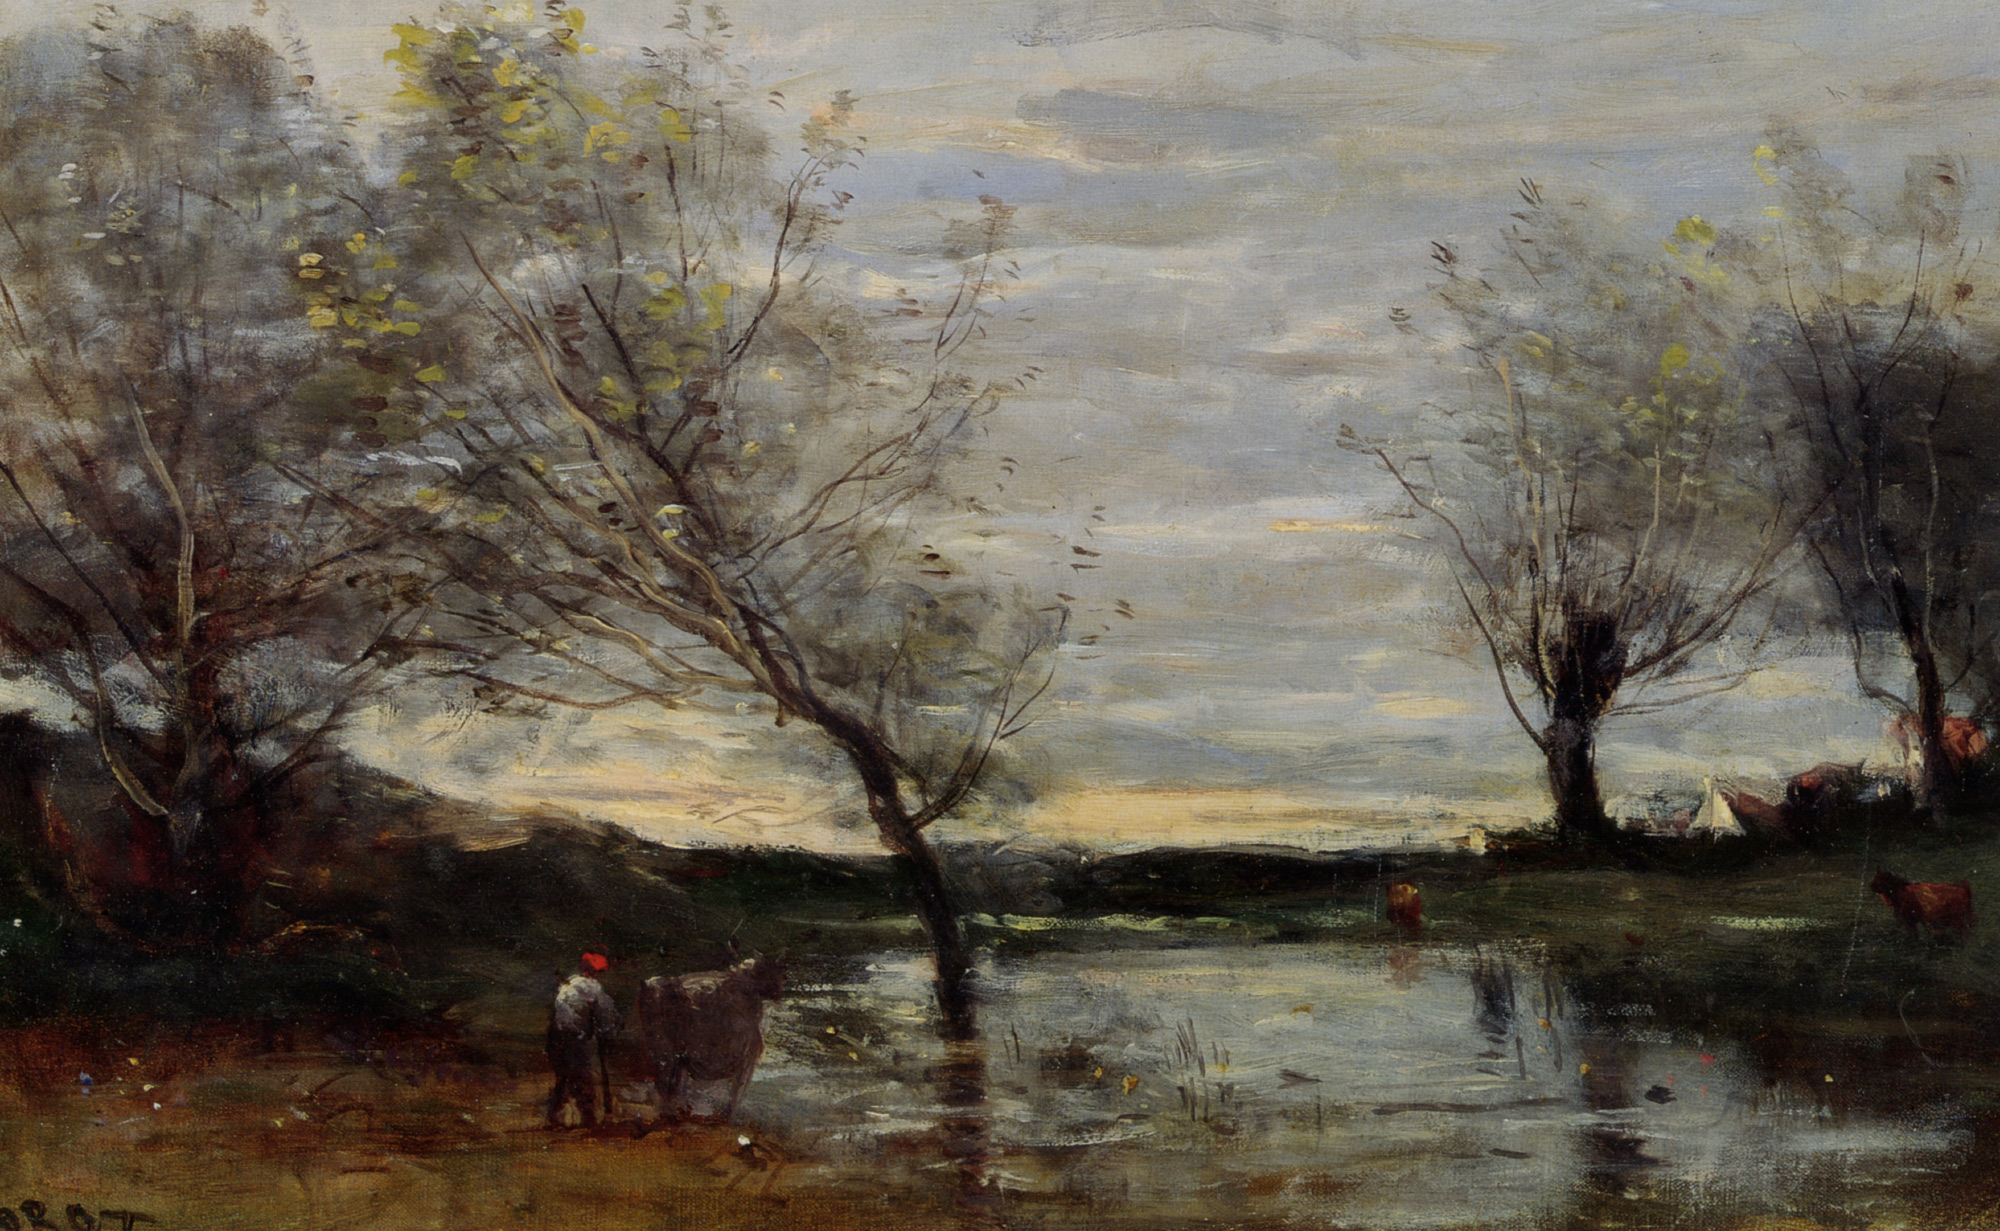 Jean baptiste camille corot 1796 1875 biography and for Camille corot